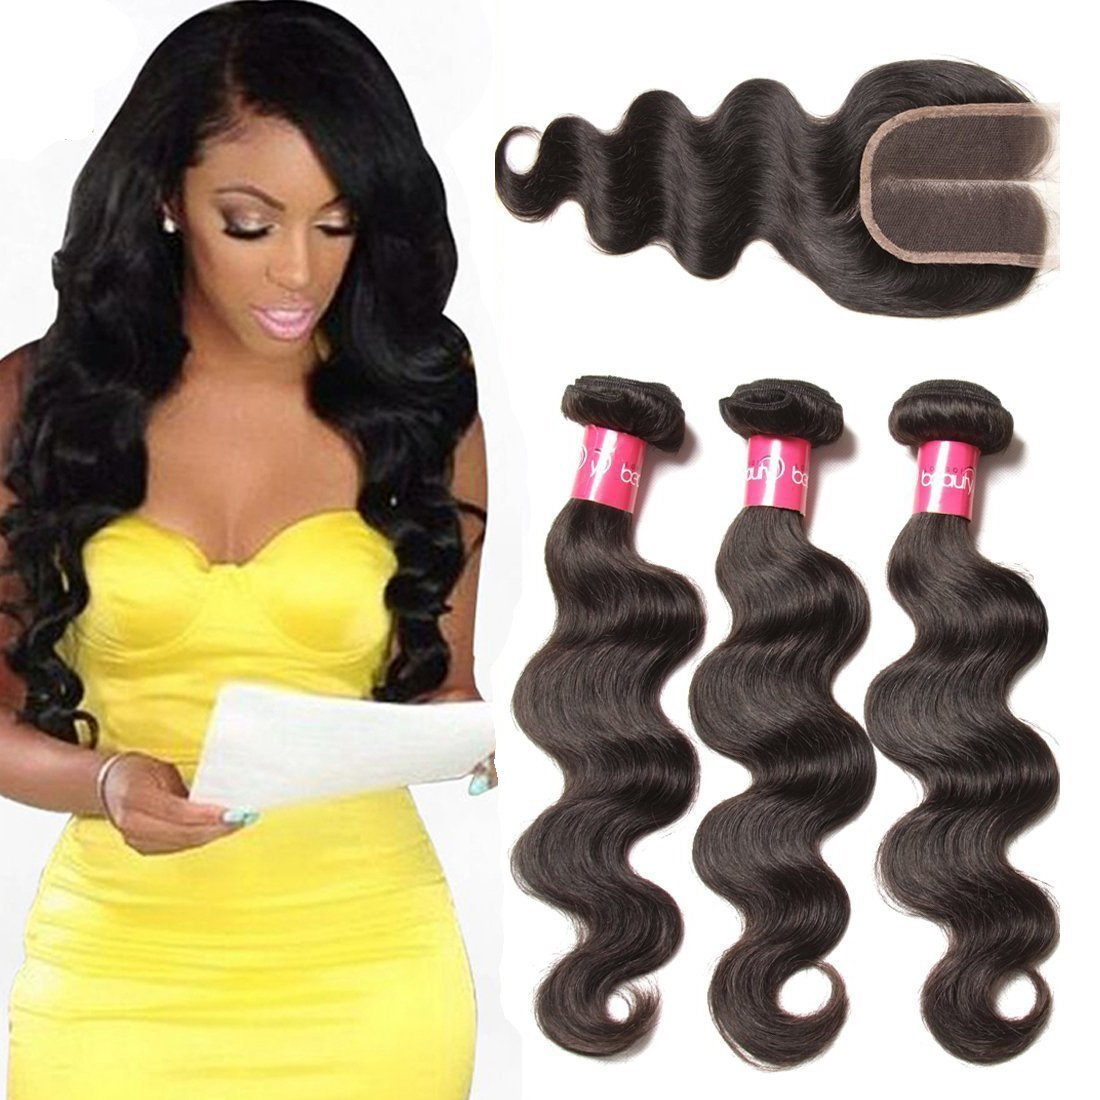 Dinoce Compatible with Longqi Beauty Body Wave Hair 3 Bundles with Closure Brazilian Middle Part Lace Closure 4x4 10A 100% Unprocessed Virgin Human Hair Natural Color 12 14 16+10 by Dinoce